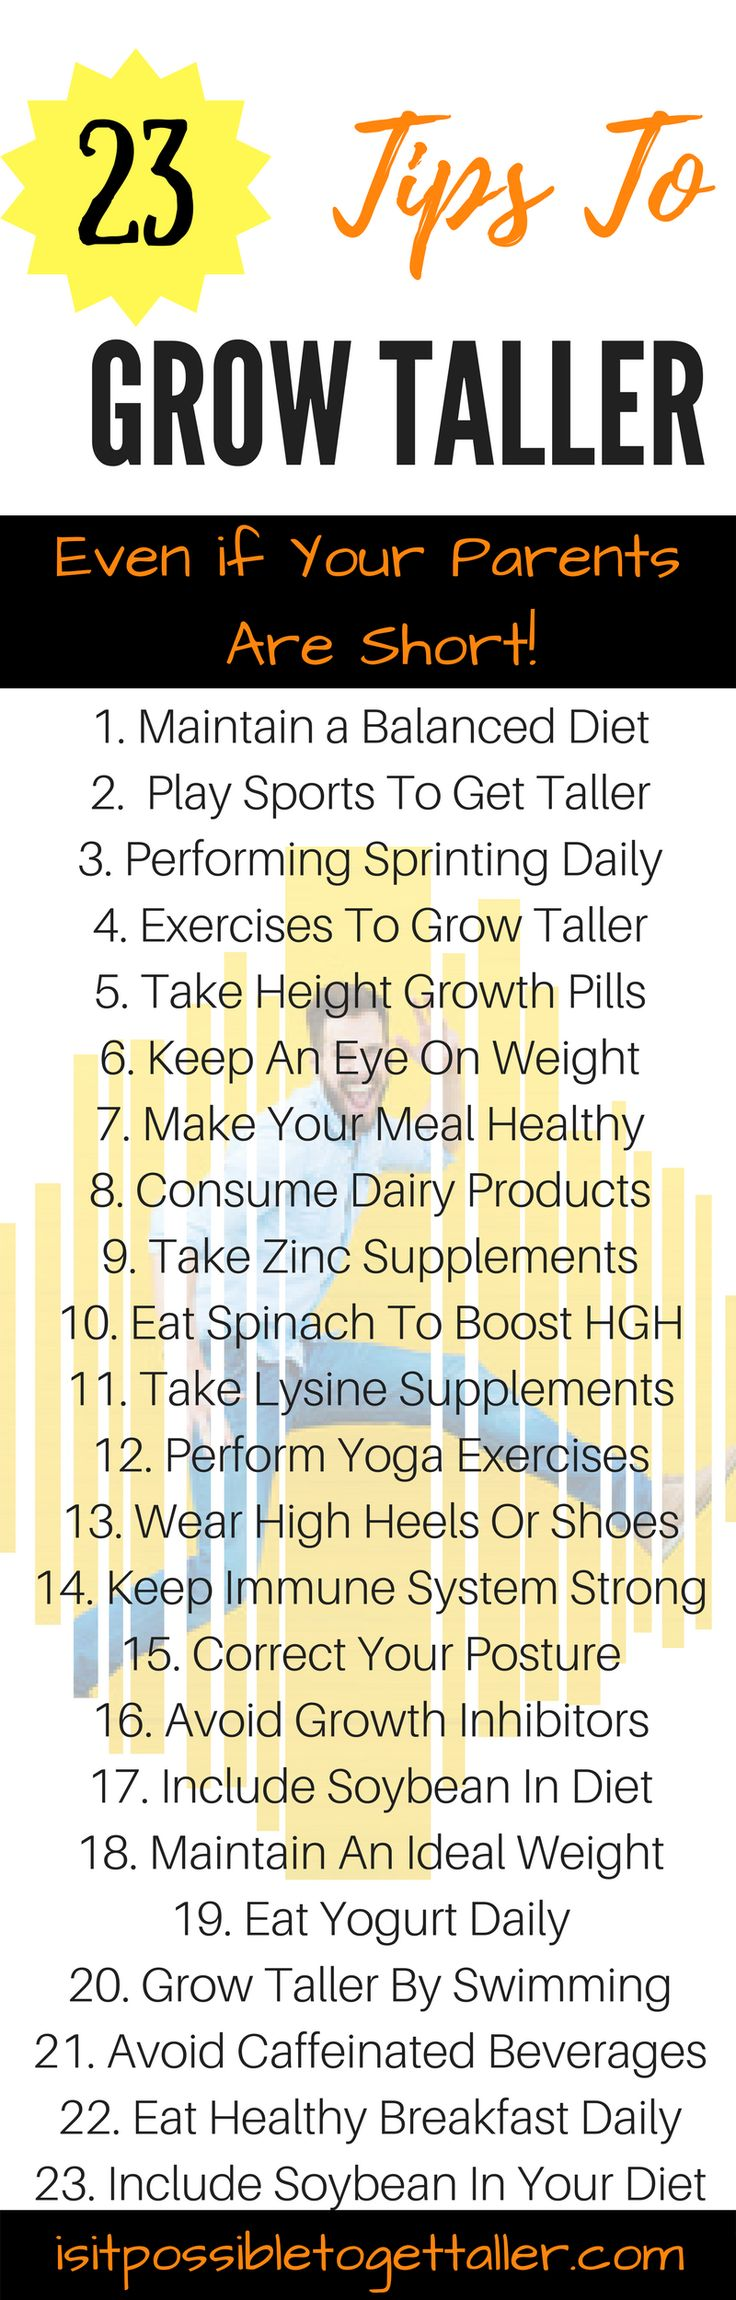 HOW TO GROW TALLER: 23 Steps To Grow Taller When Your Parents Are Short! How to get taller faster? How to grow 6 inches in height? How can I get taller? Stretches, swimming, exercises to grow taller